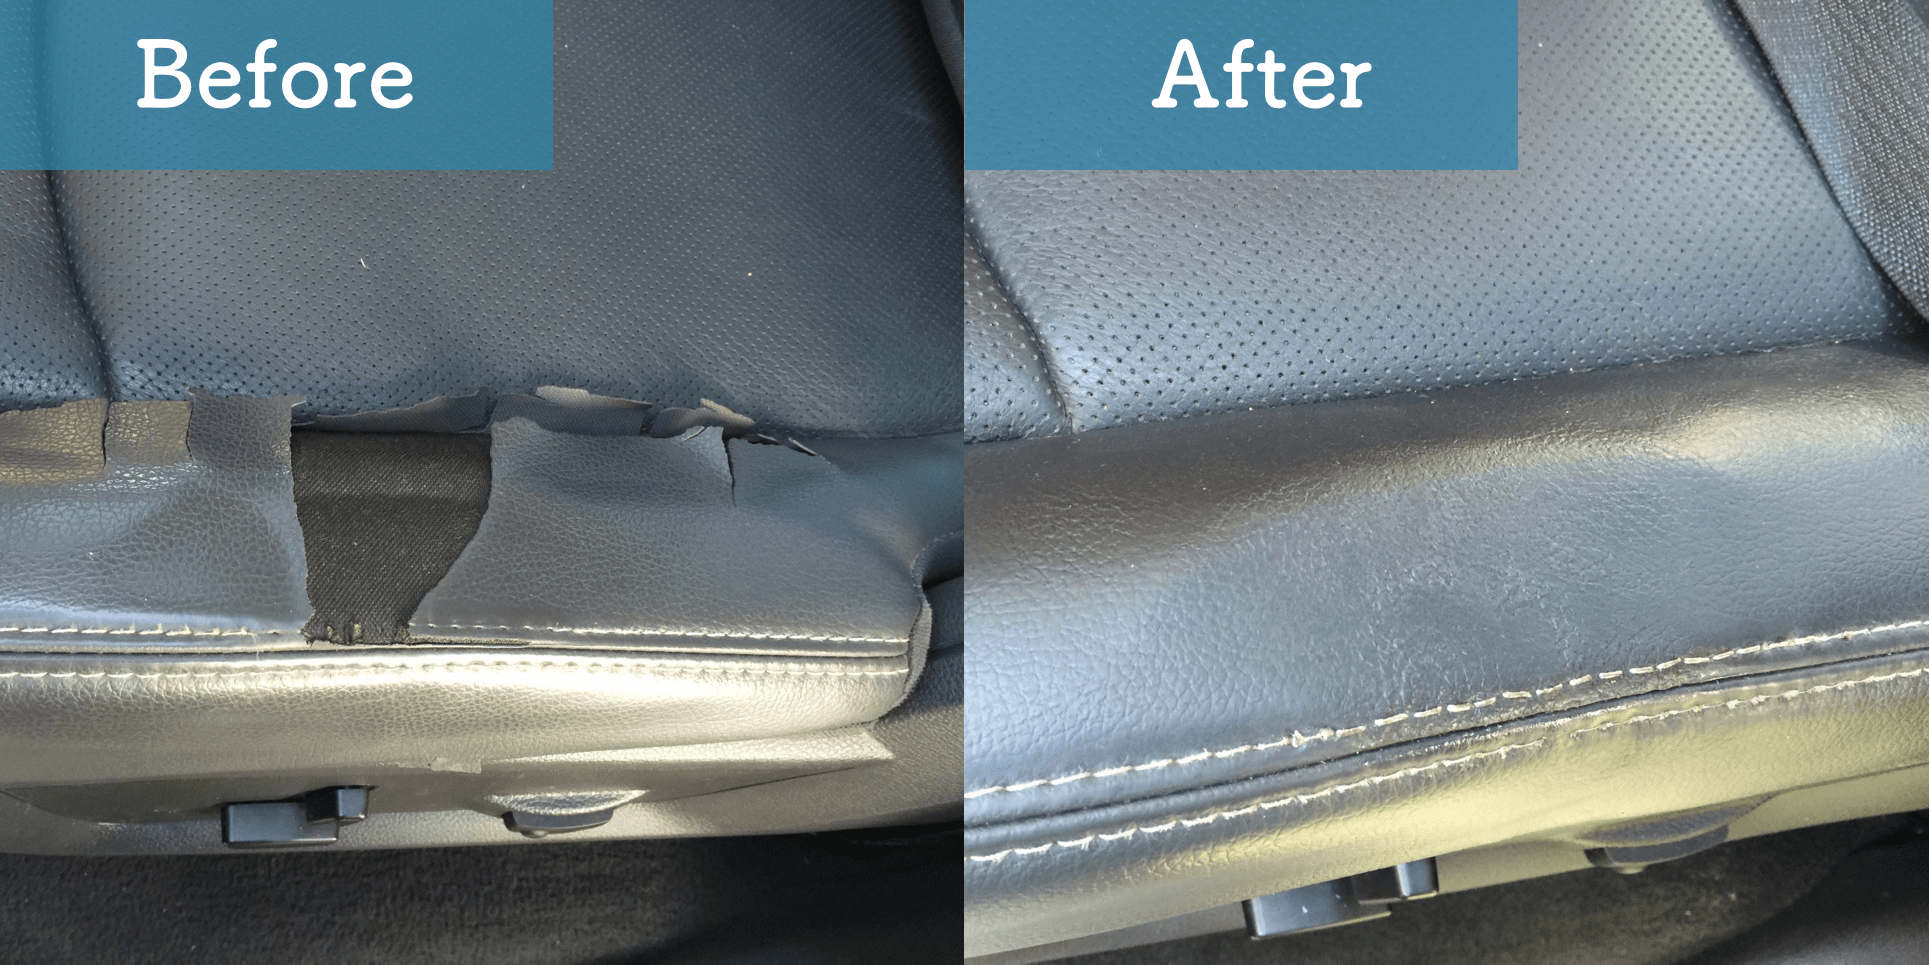 cracked and torn vinyl car seat before and after image